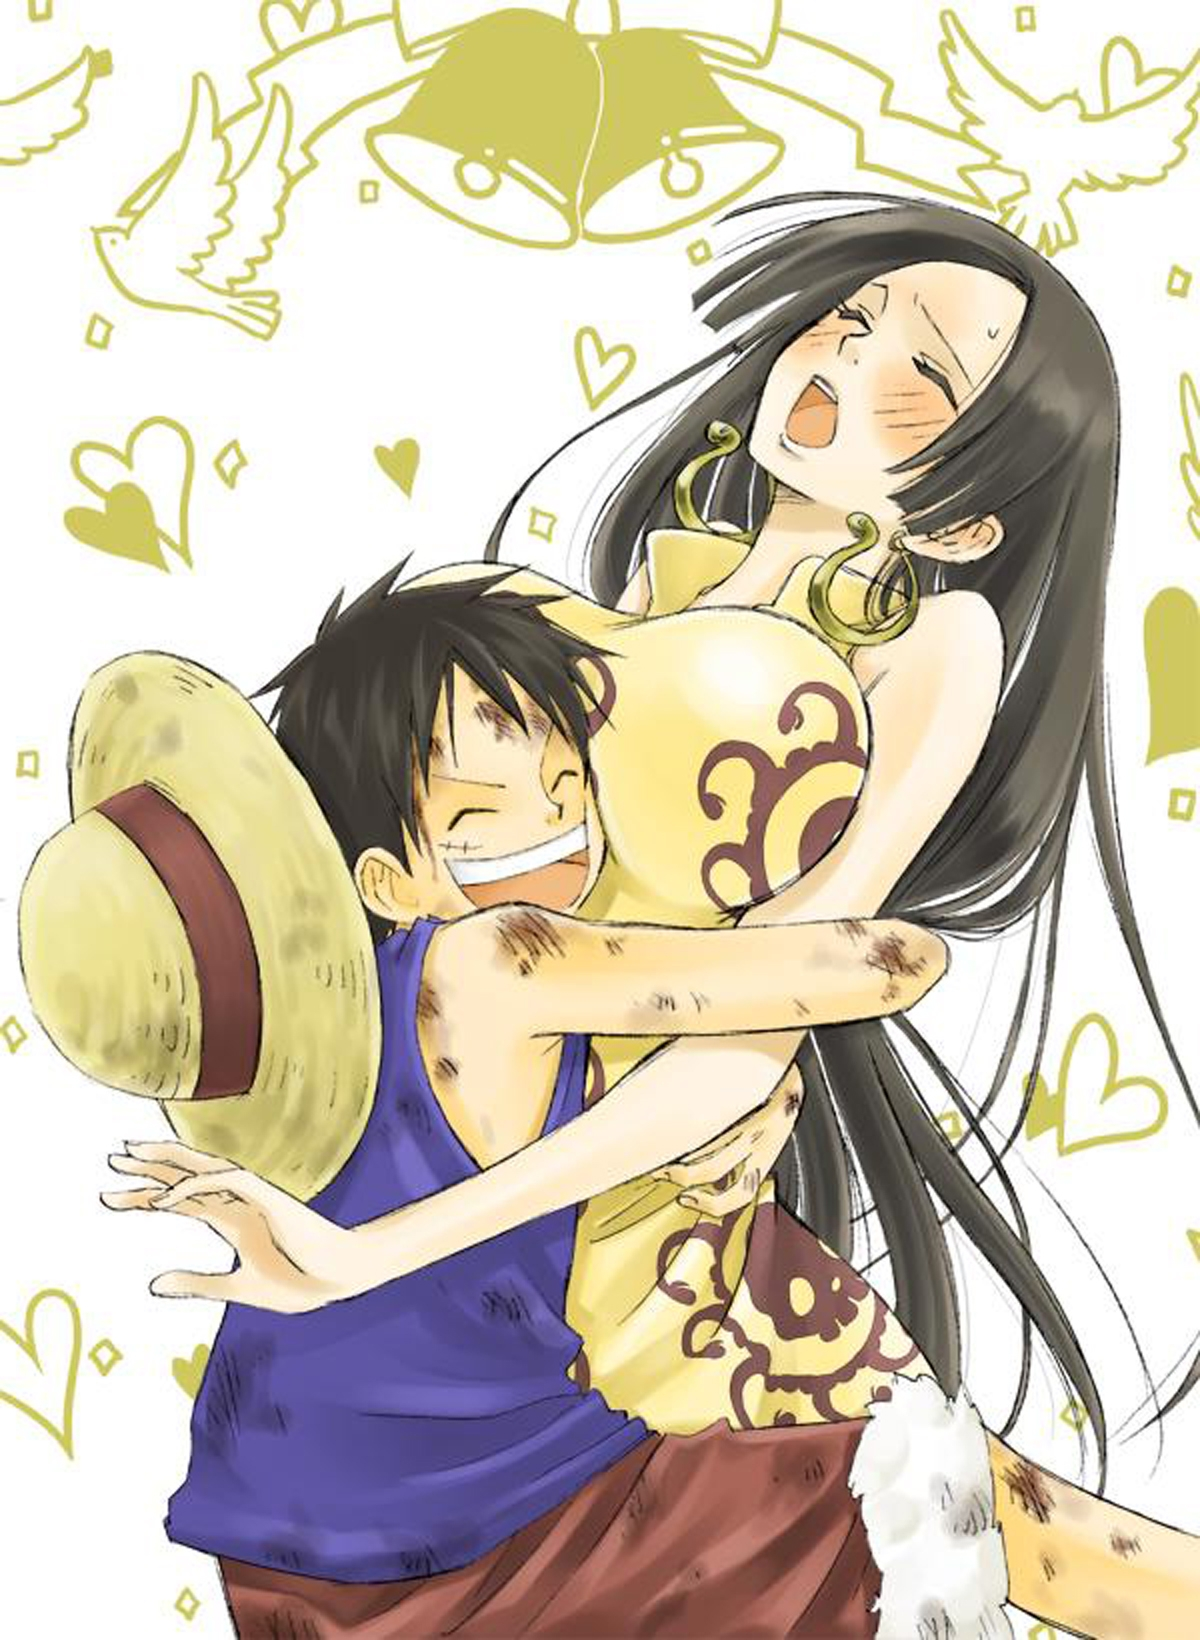 Toon sex pic ##00013062114 1boy female bell black hair blush boa hancock china dress dove dress earrings fur trim hat heart highres hug injury jolly roger long hair monkey d luffy one piece pirate red shorts scar shorts smile straw hat vest yellow dress